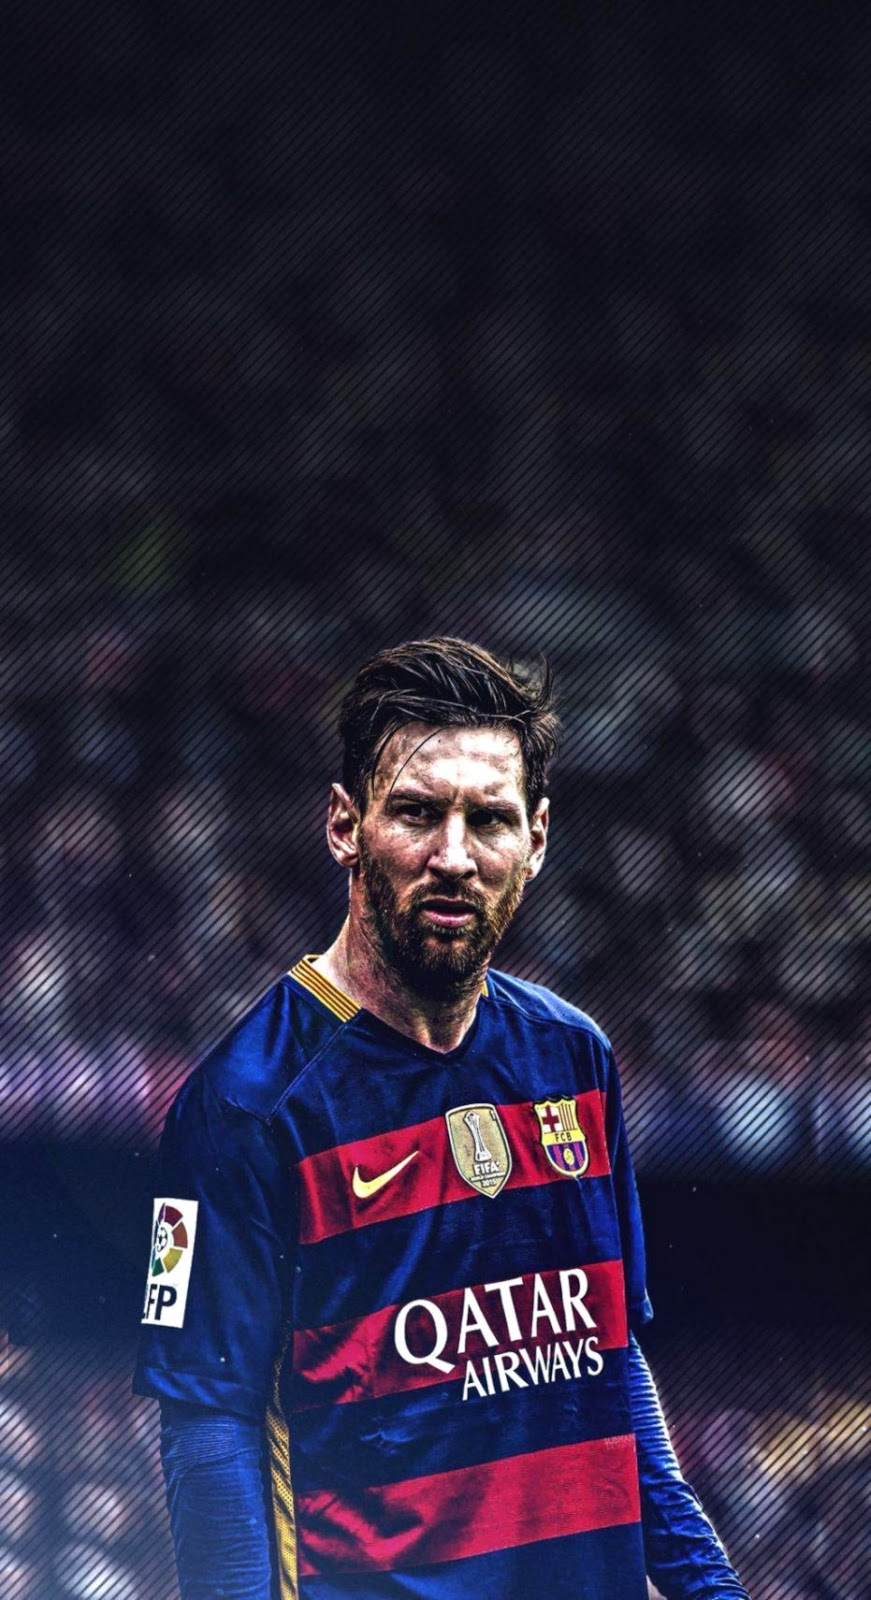 download Lionel Messi Wallpaper Iphone Mobiles Wallpapers 871x1600